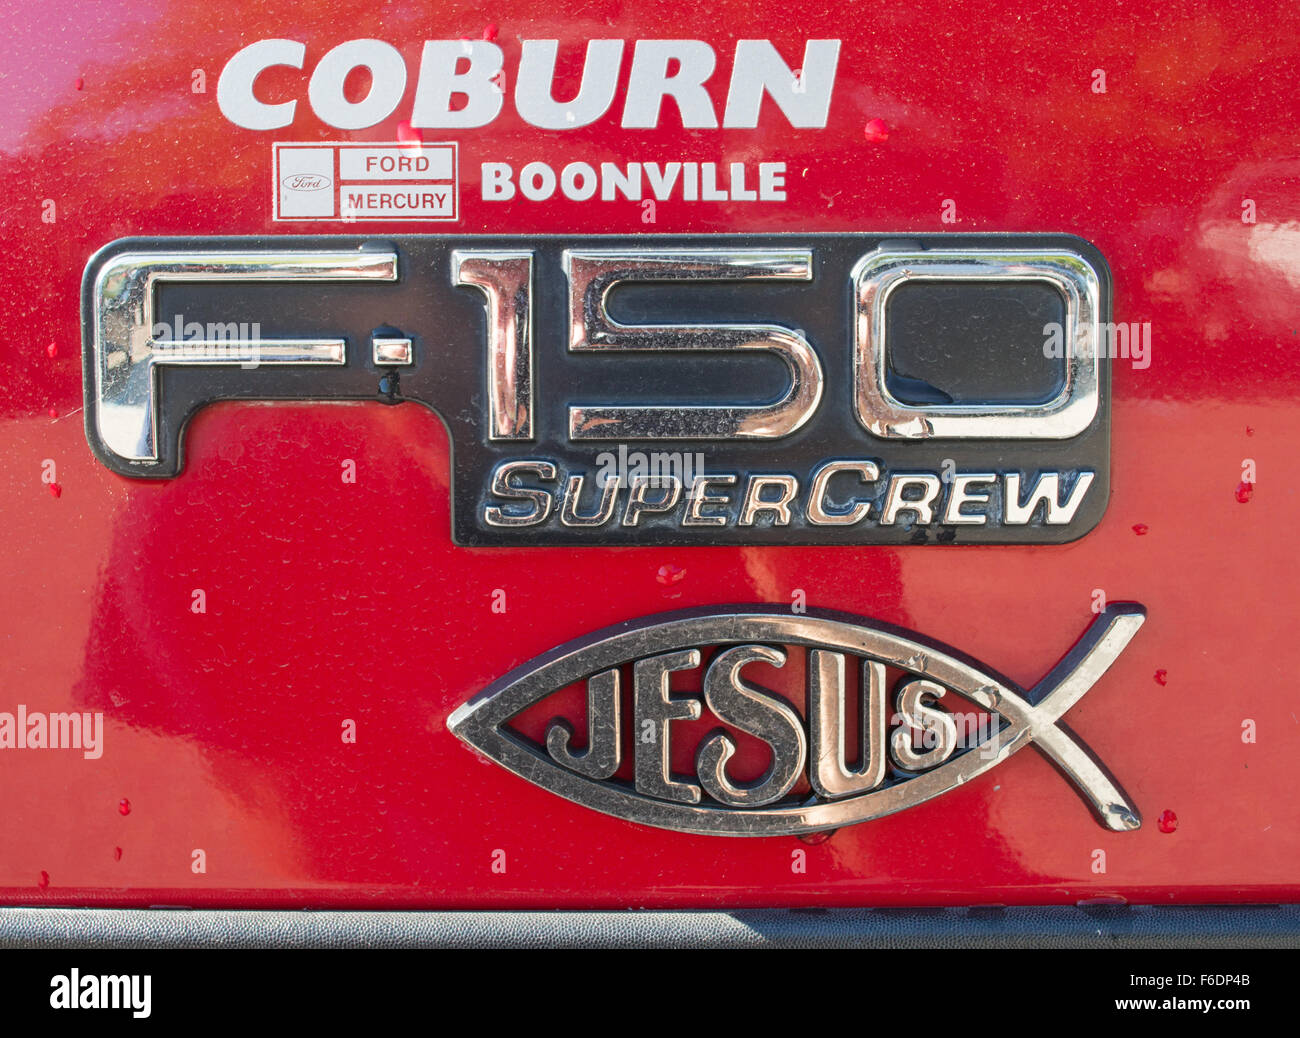 Jesus Sign of the Fish on Ford F-150 Supercrew vehicle, Virginia, USA - Stock Image